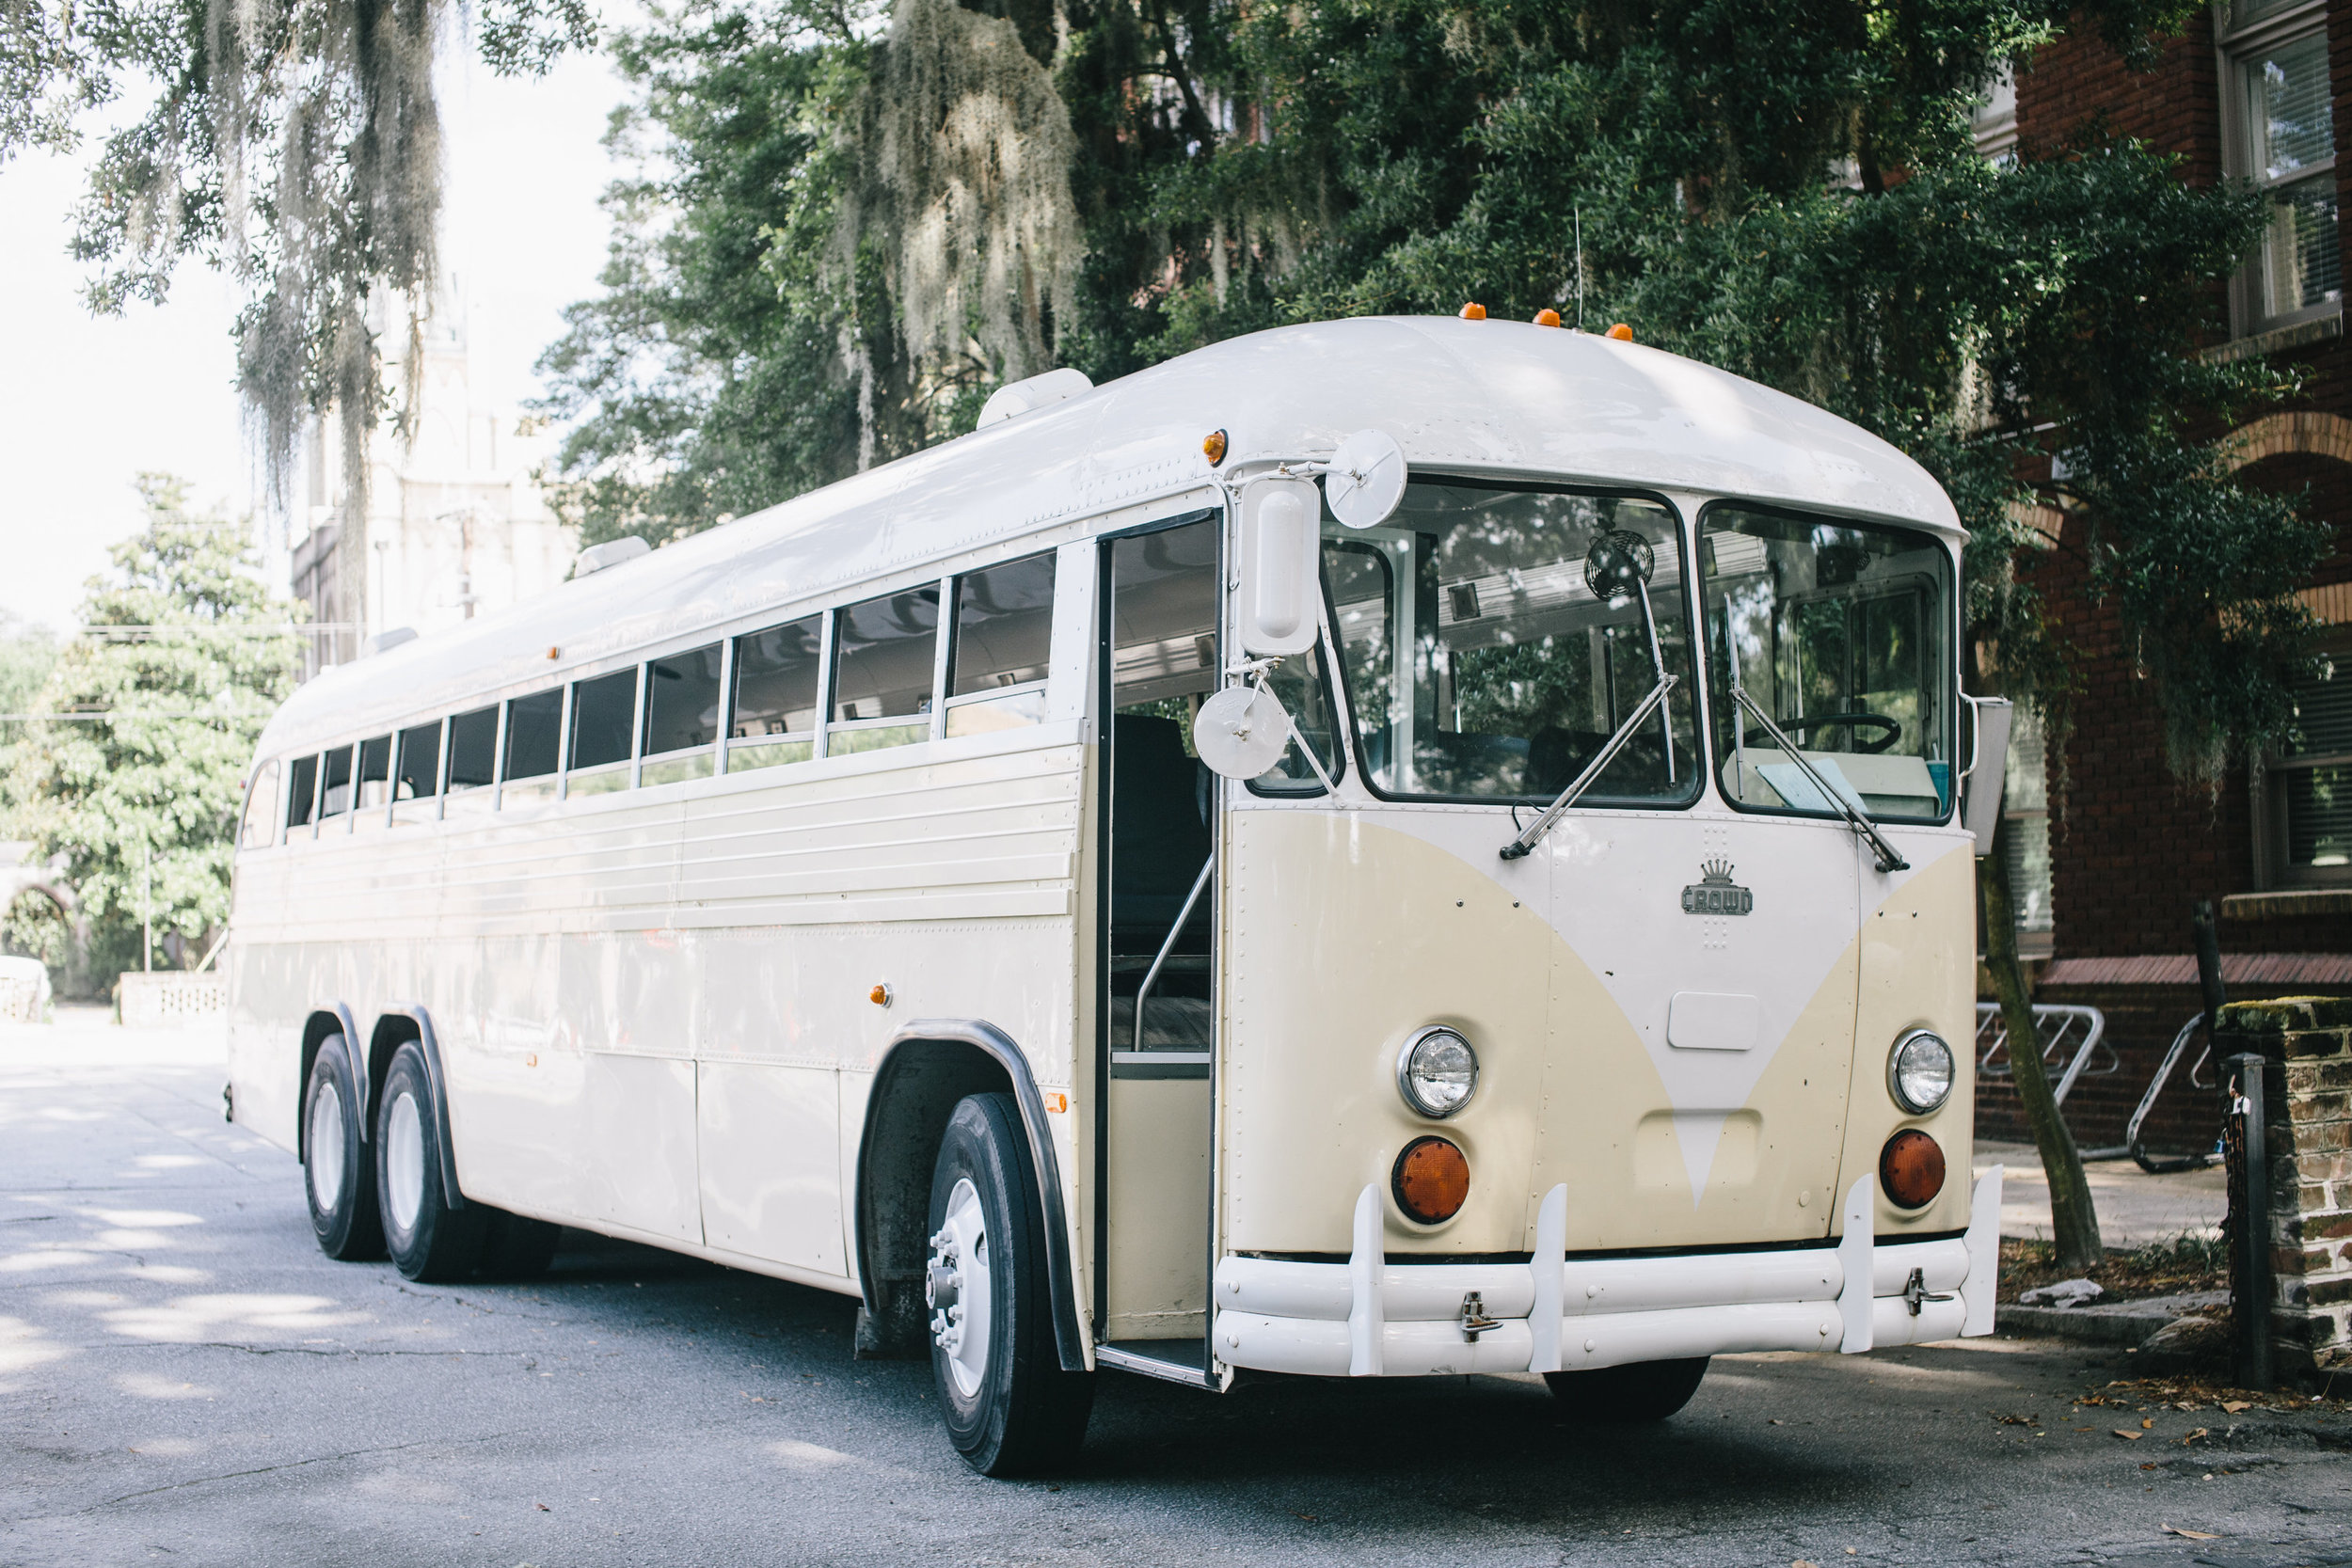 mackensey-alexander-photography-ivory-and-beau-bridal-boutique-from-this-day-forward-wedding-planning-sarah-seven-gwen-savannah-bridal-boutique-savannah-wedding-dresses-savannah-bridal-boutique-savannah-wedding-planner-savannah-weddings-30.jpg